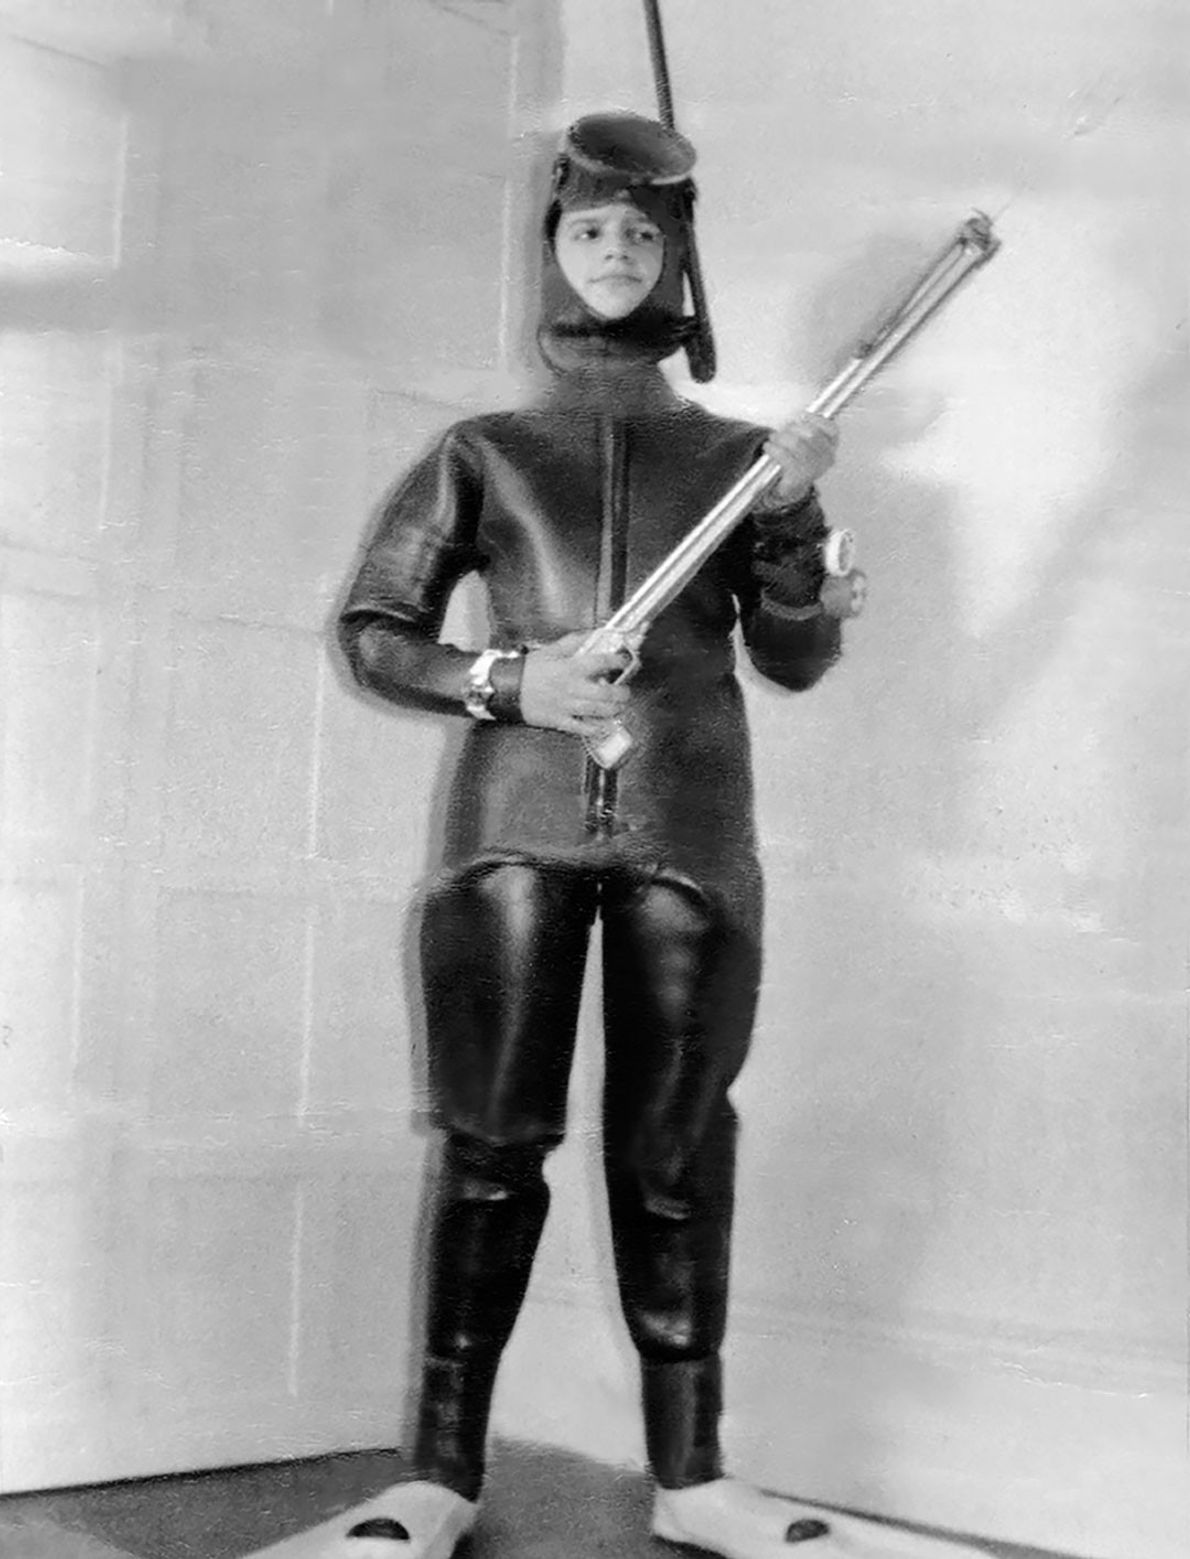 A 13-year-old David Doubilet models his birthday gift of wetsuit and spear gun.